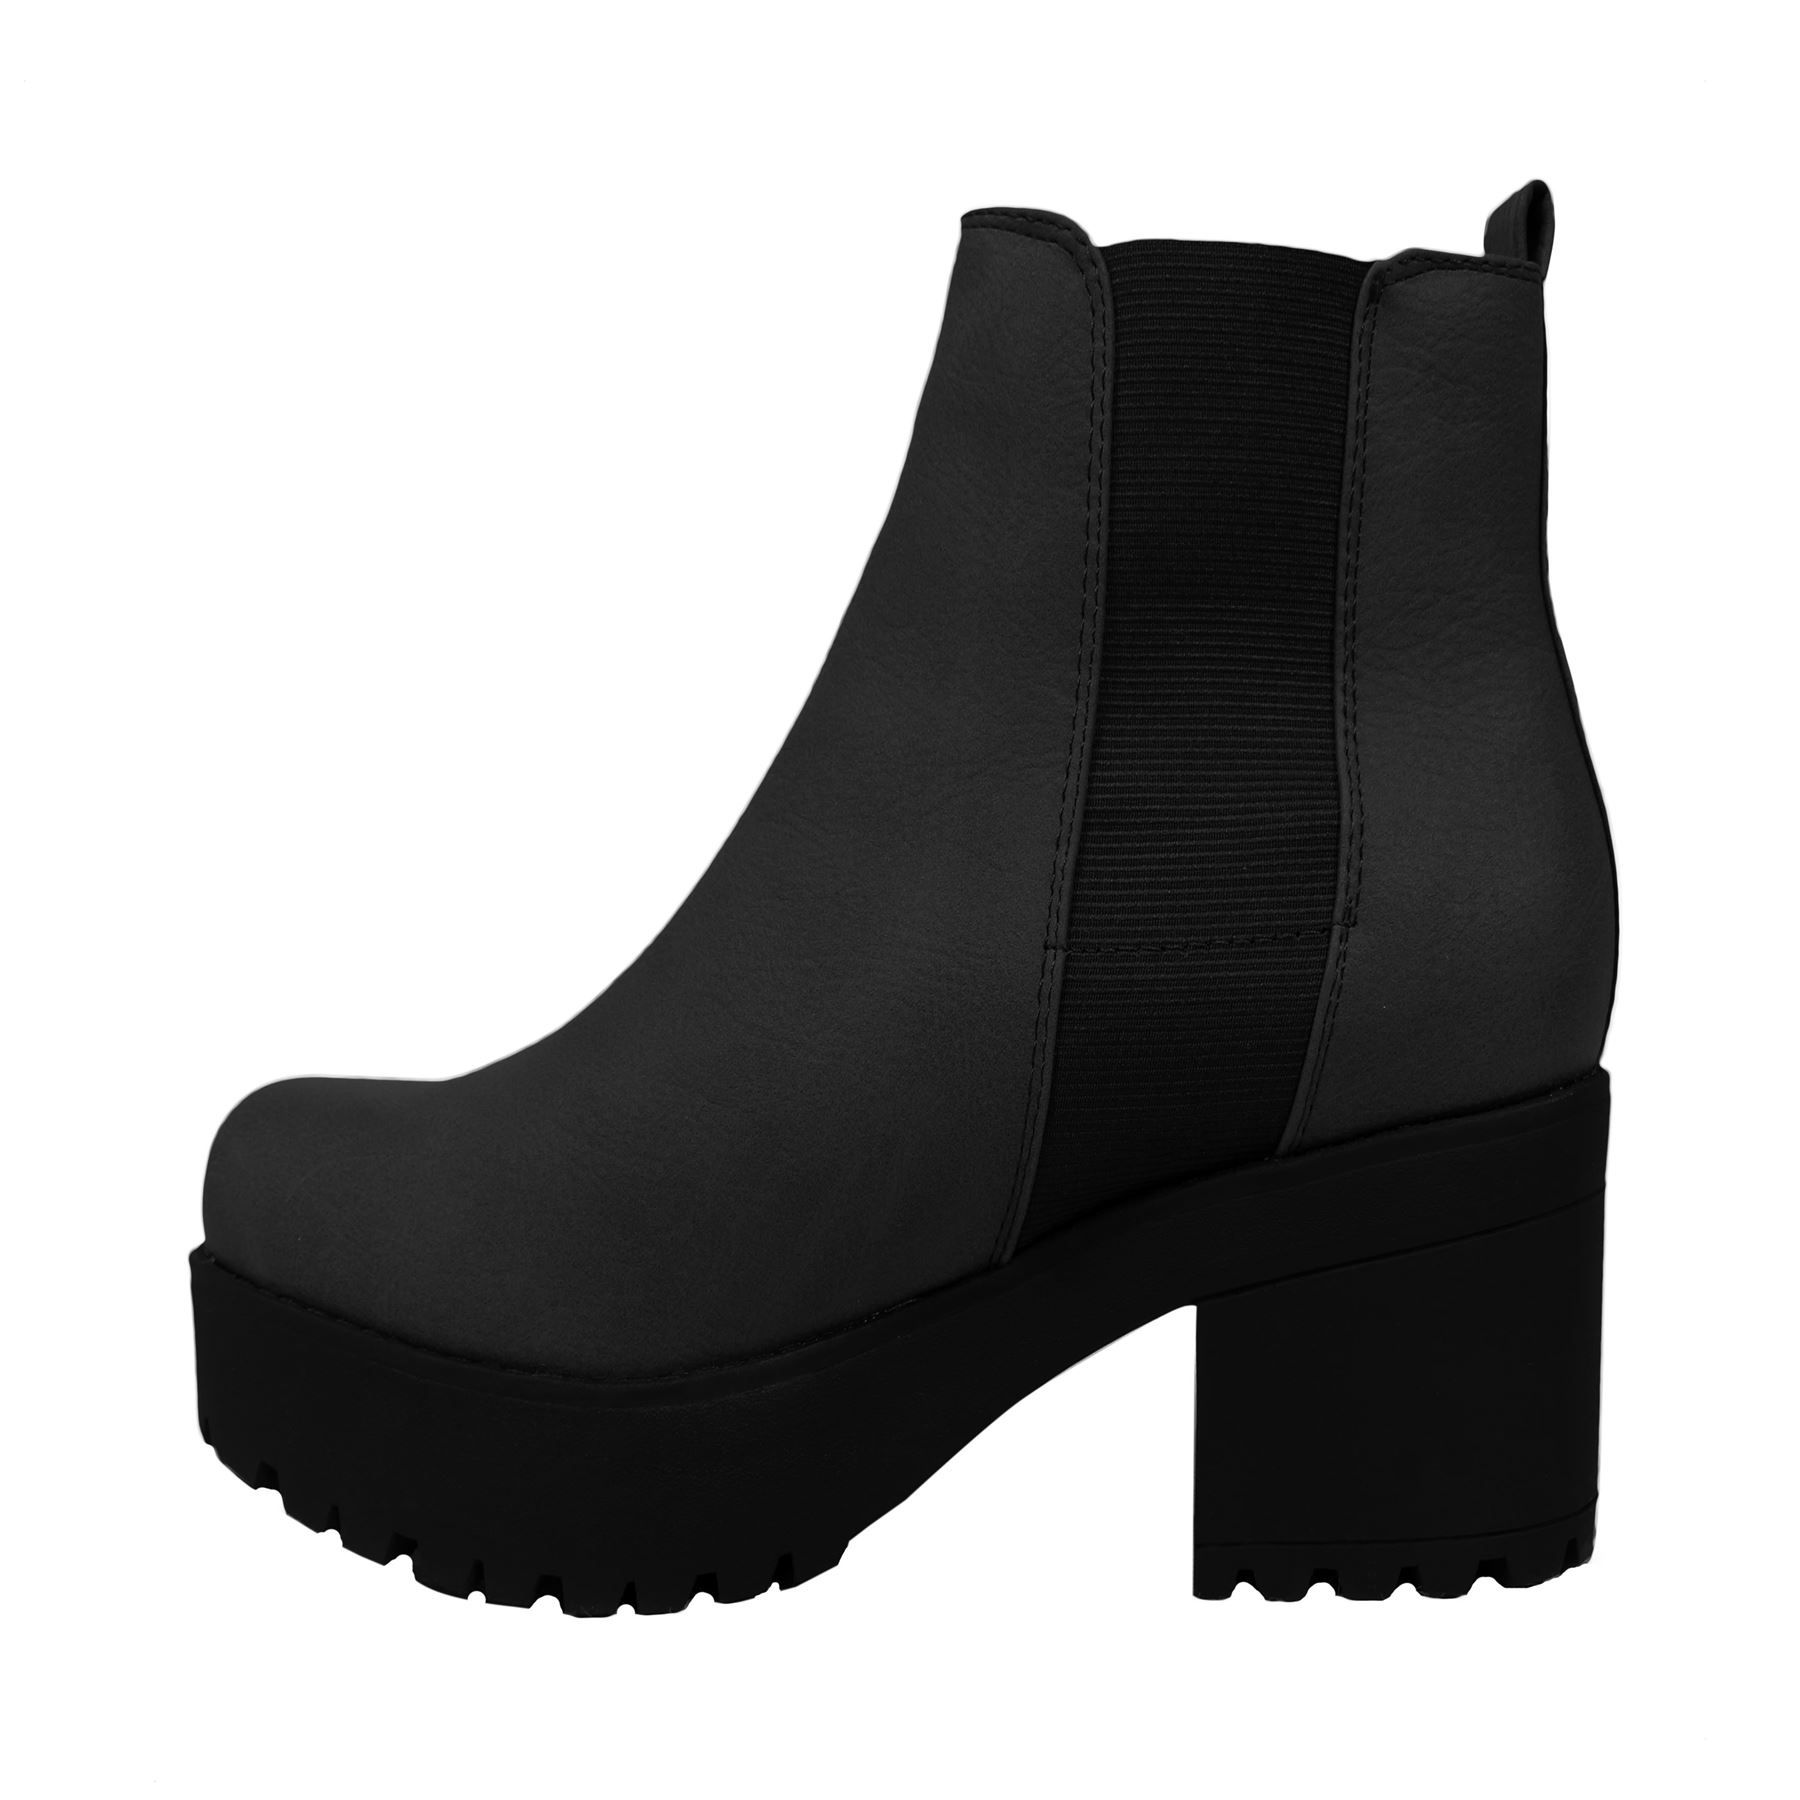 427ed71dbef30 Ladies-Womens-Mid-Block-Heel-Ankle-Boots-Chunky-Platform-Chelsea-Shoe -Size-3-8